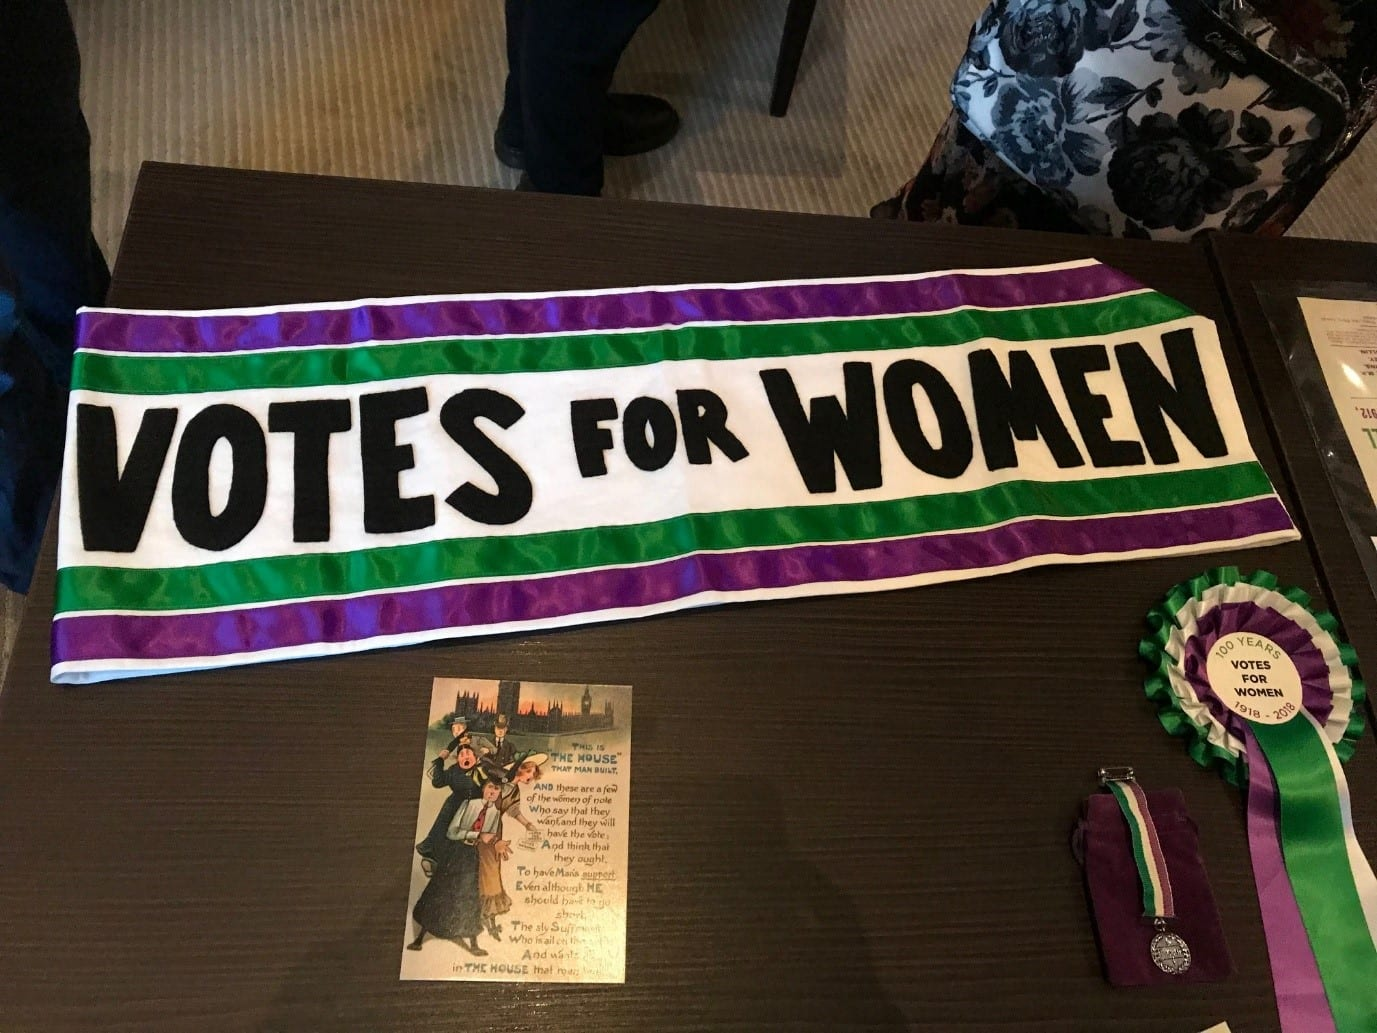 A selection of Votes for Women artefacts